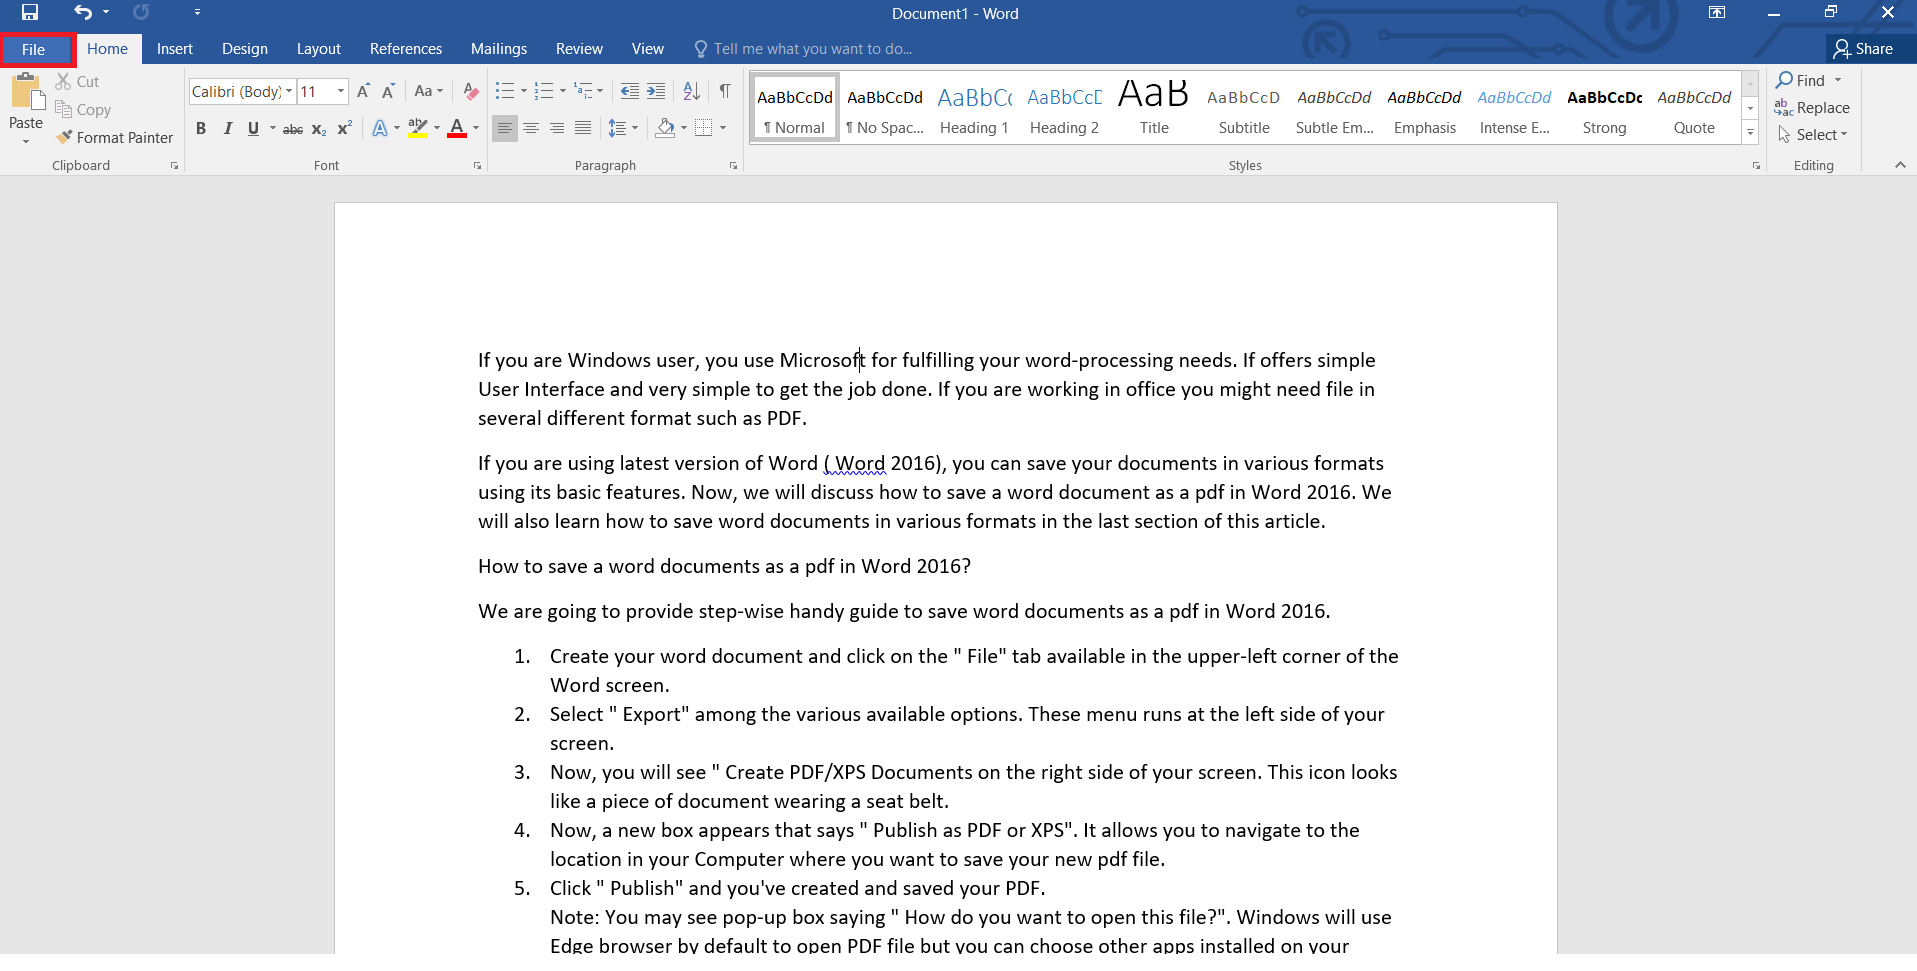 Save option in Word 2016